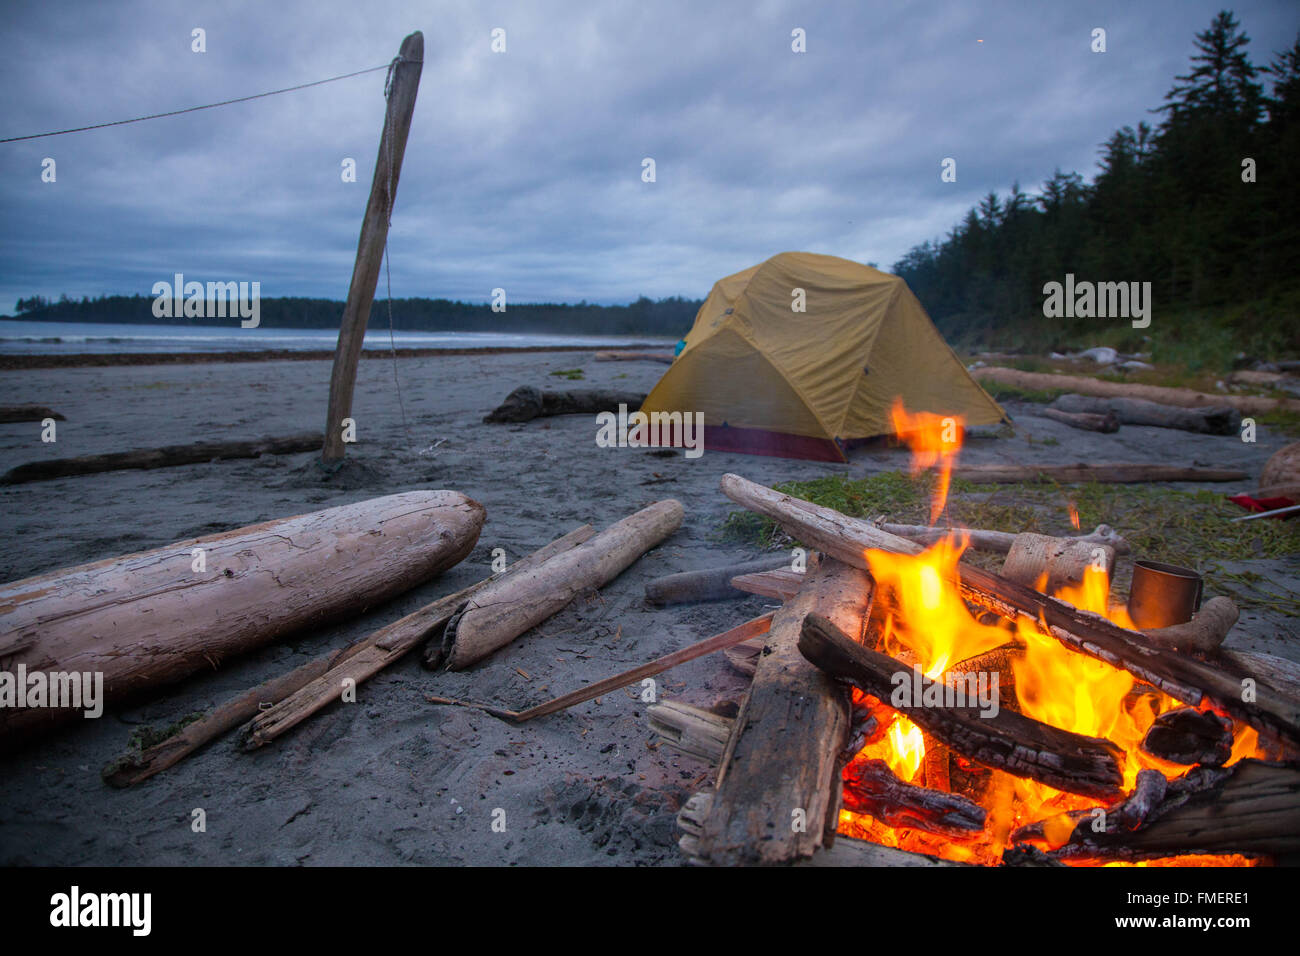 Backcountry Camping at Nels Bight, Cape Scott Provincial Park, Vancouver Island, British Columbia - Stock Image